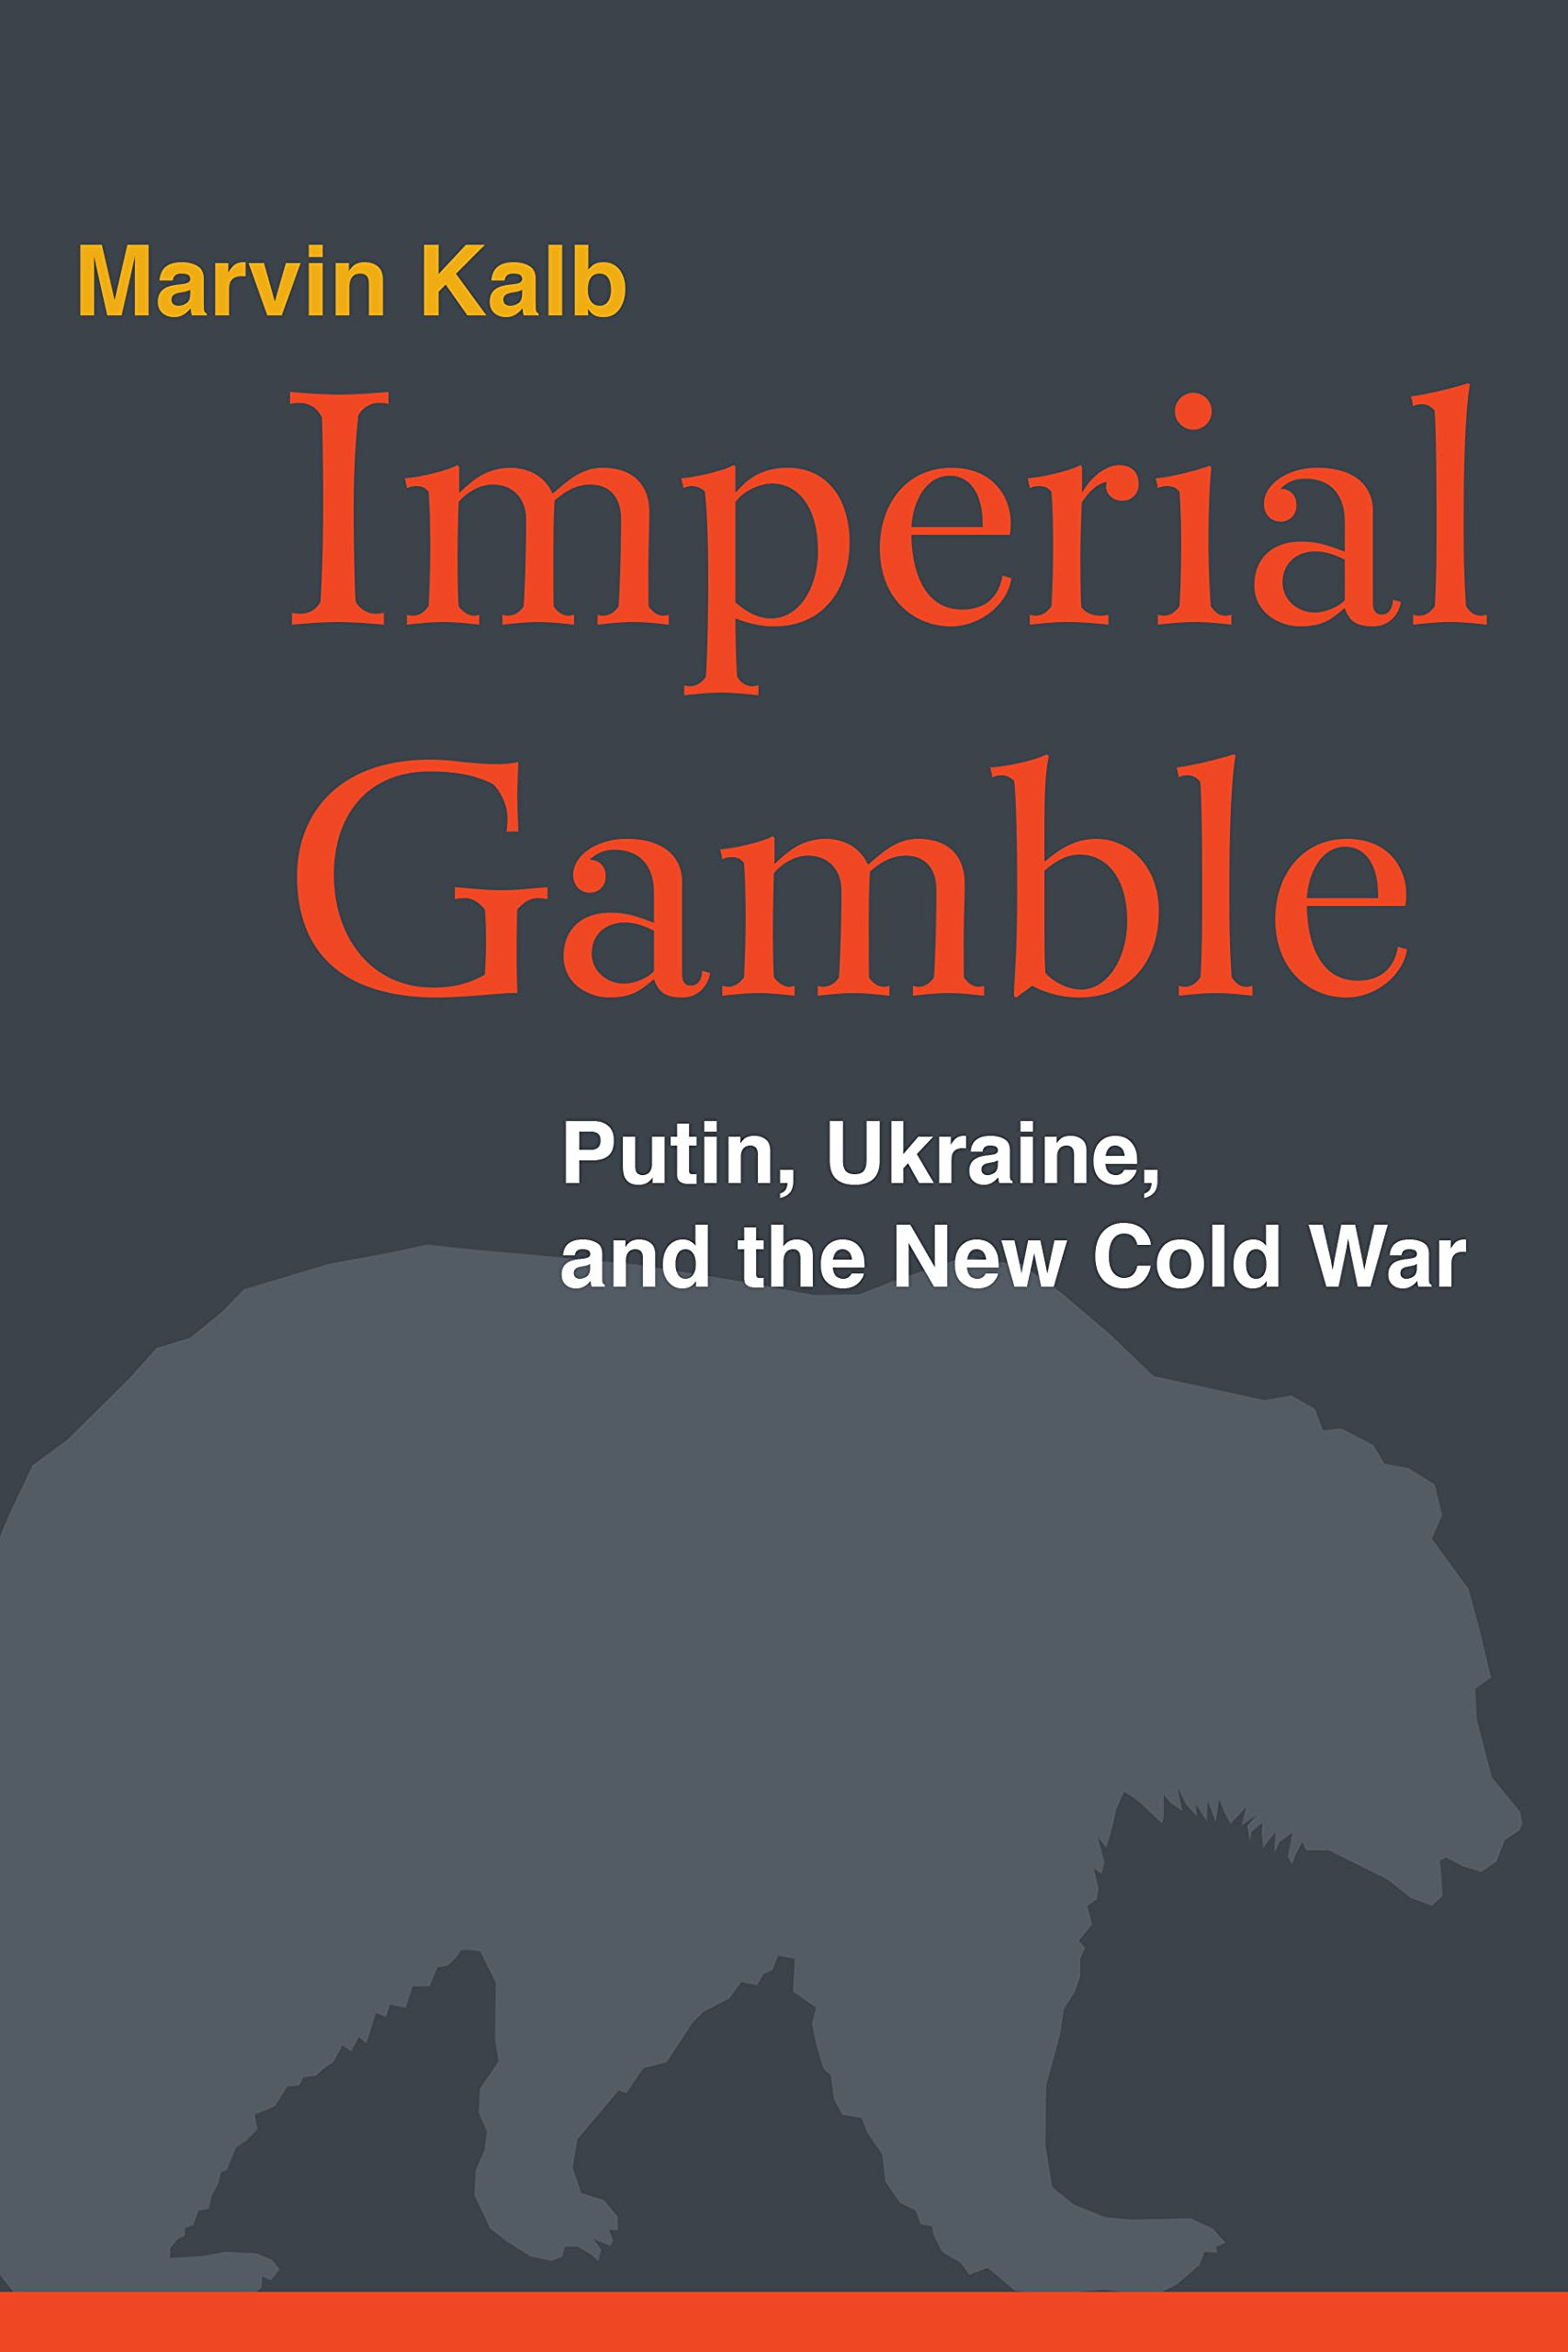 Imperial Gamble: Putin, Ukraine, and the New Cold War: Marvin Kalb:  9780815726647: Amazon.com: Books